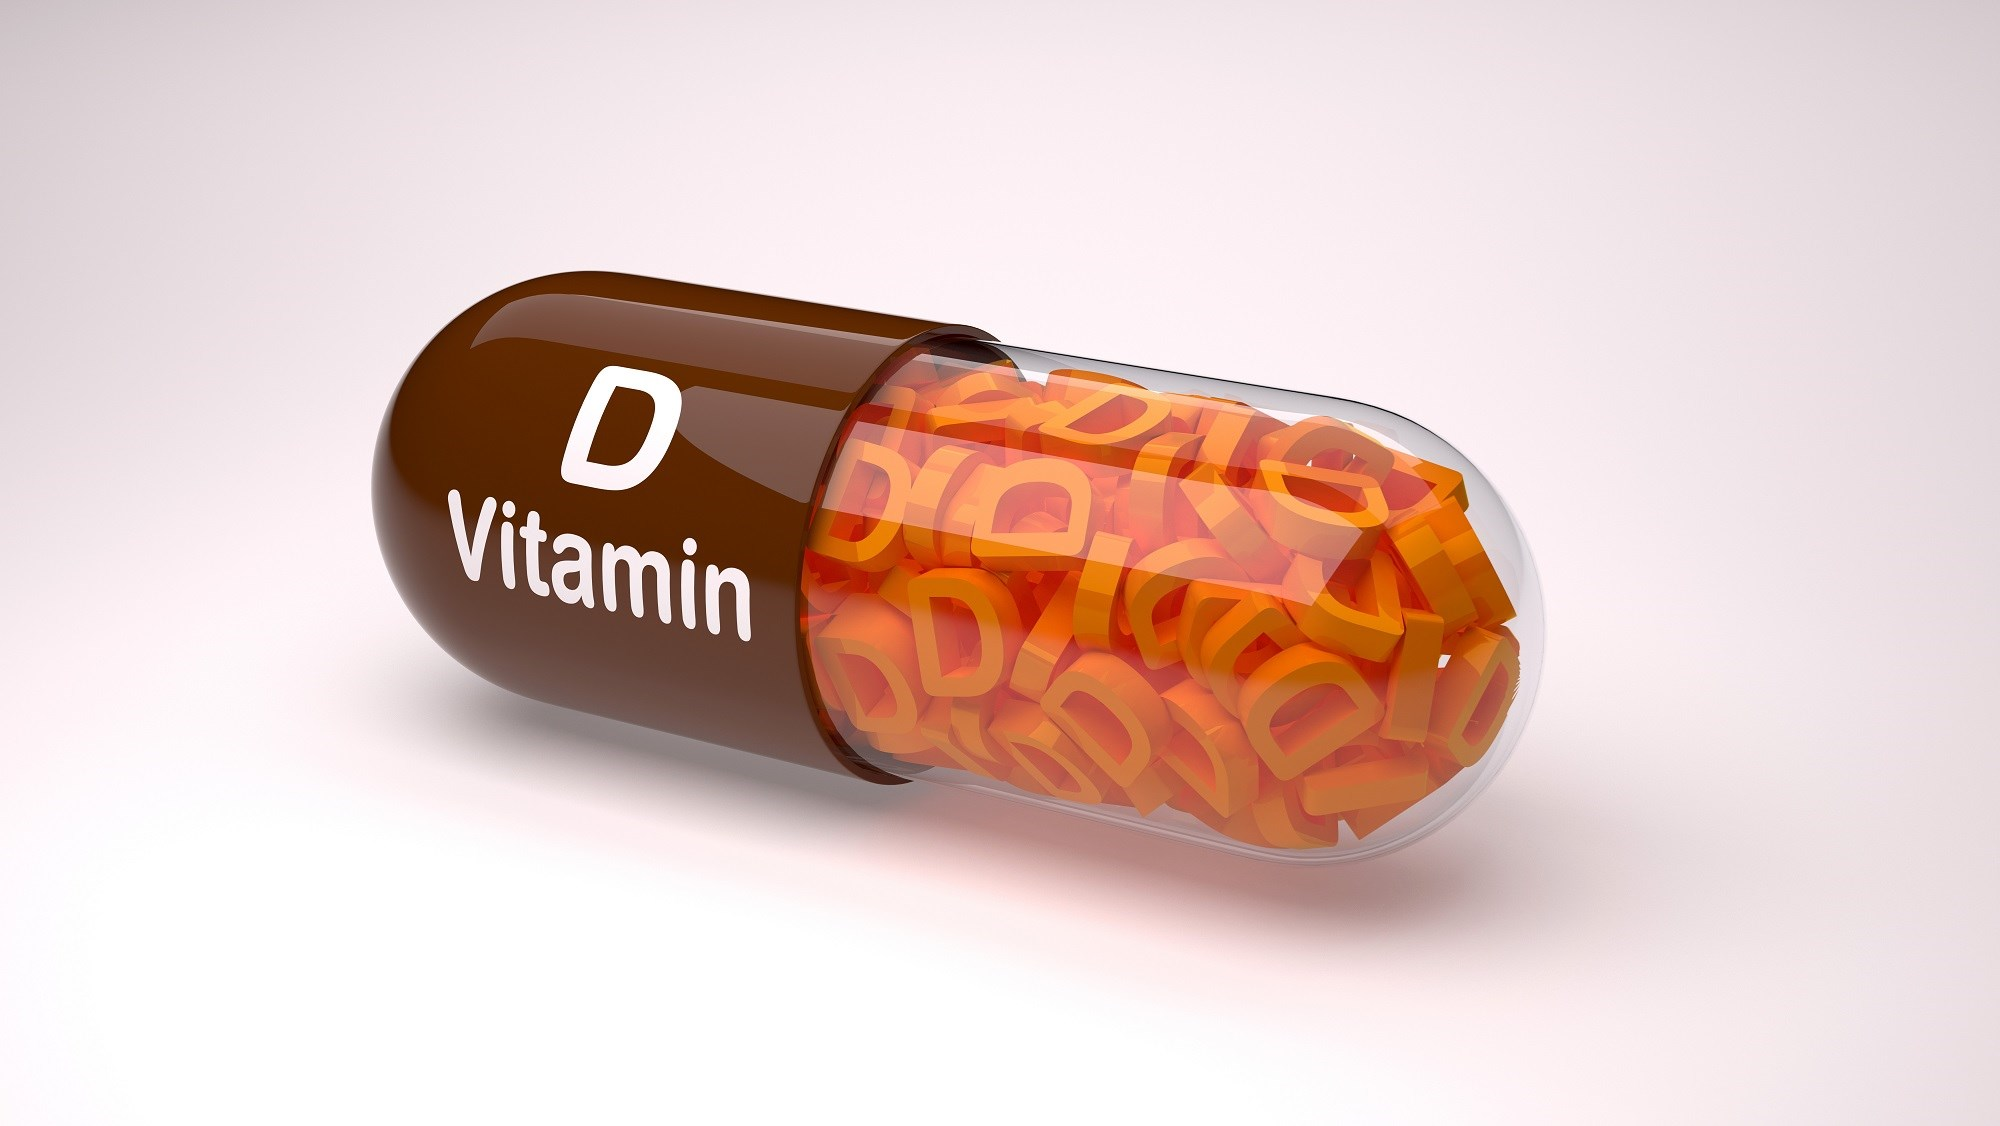 Vitamin D deficiency is associated with increased risk for sepsis mortality in postmenopausal women, which was seen in all ages.